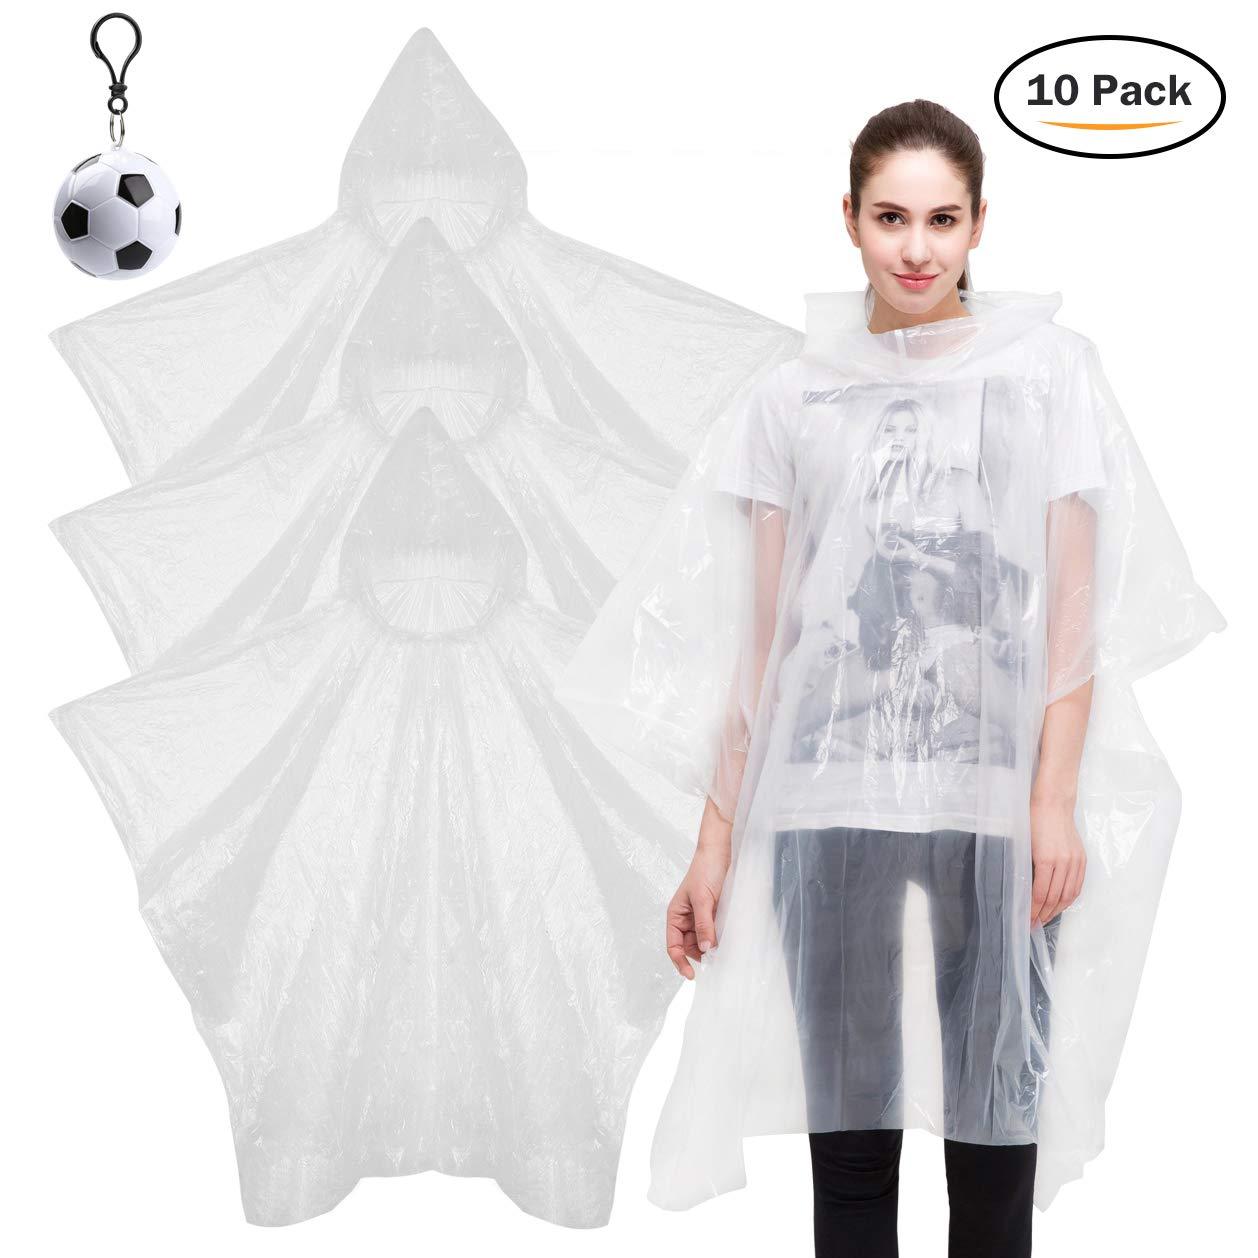 Digitek Waterproof Ponchos - Disposable Poncho Waterproof Raincoat, 10 PCS Rain Poncho Raincoat 2018 Emergency Poncho, Portable Poncho for Festival Camping Hiking Travel and Theme Parks